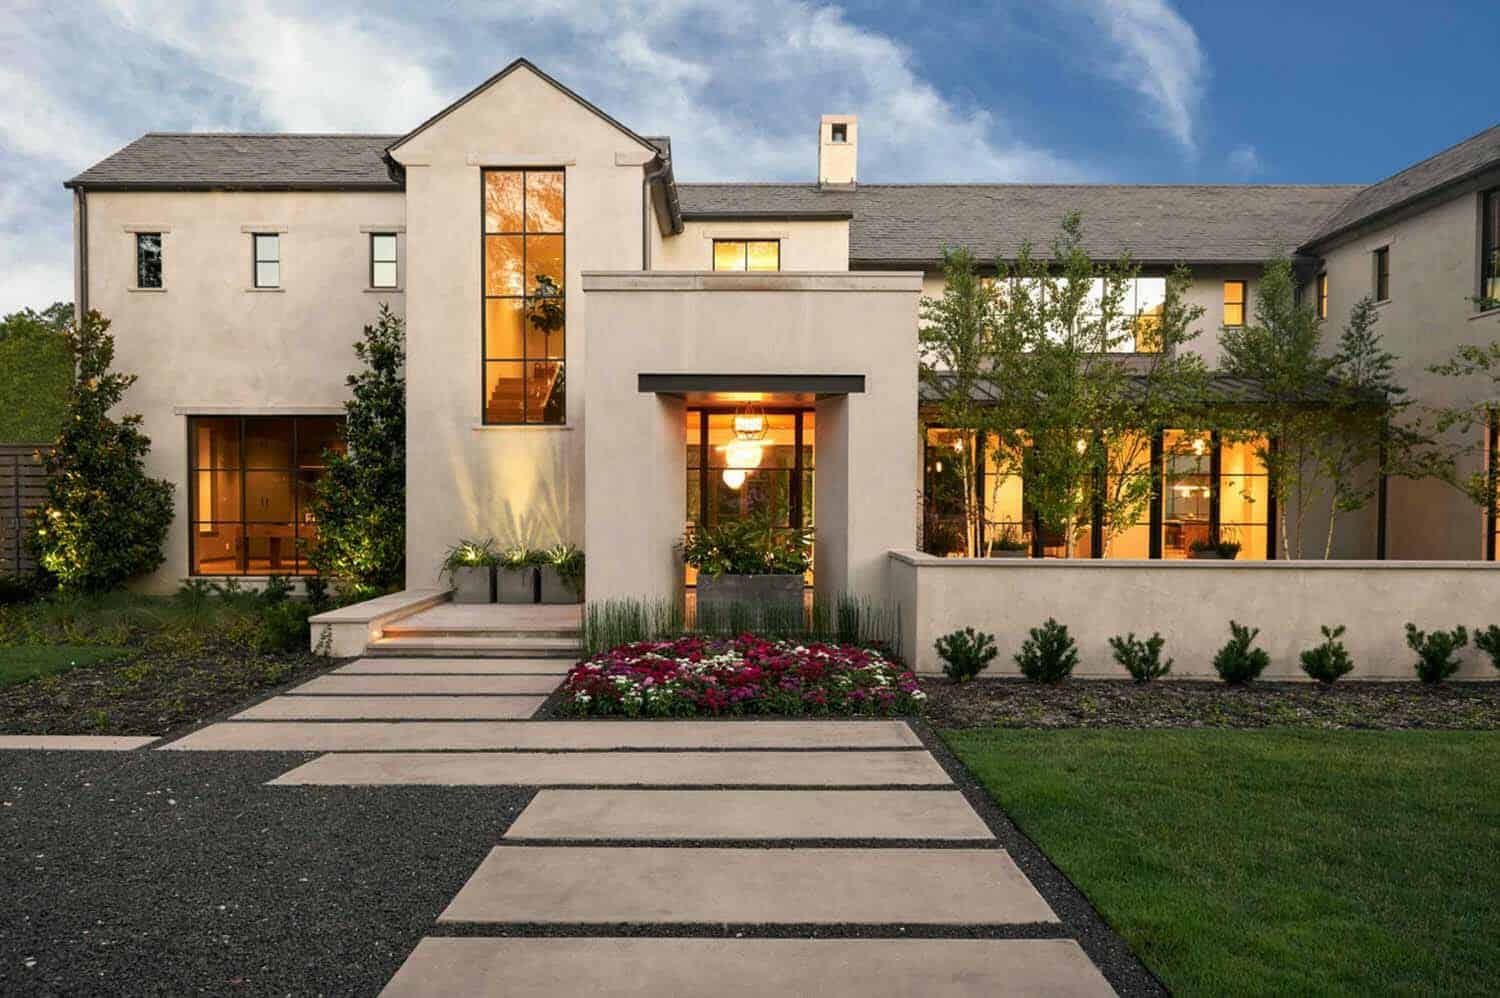 Transitional style home in Texas boasts outstanding interior details